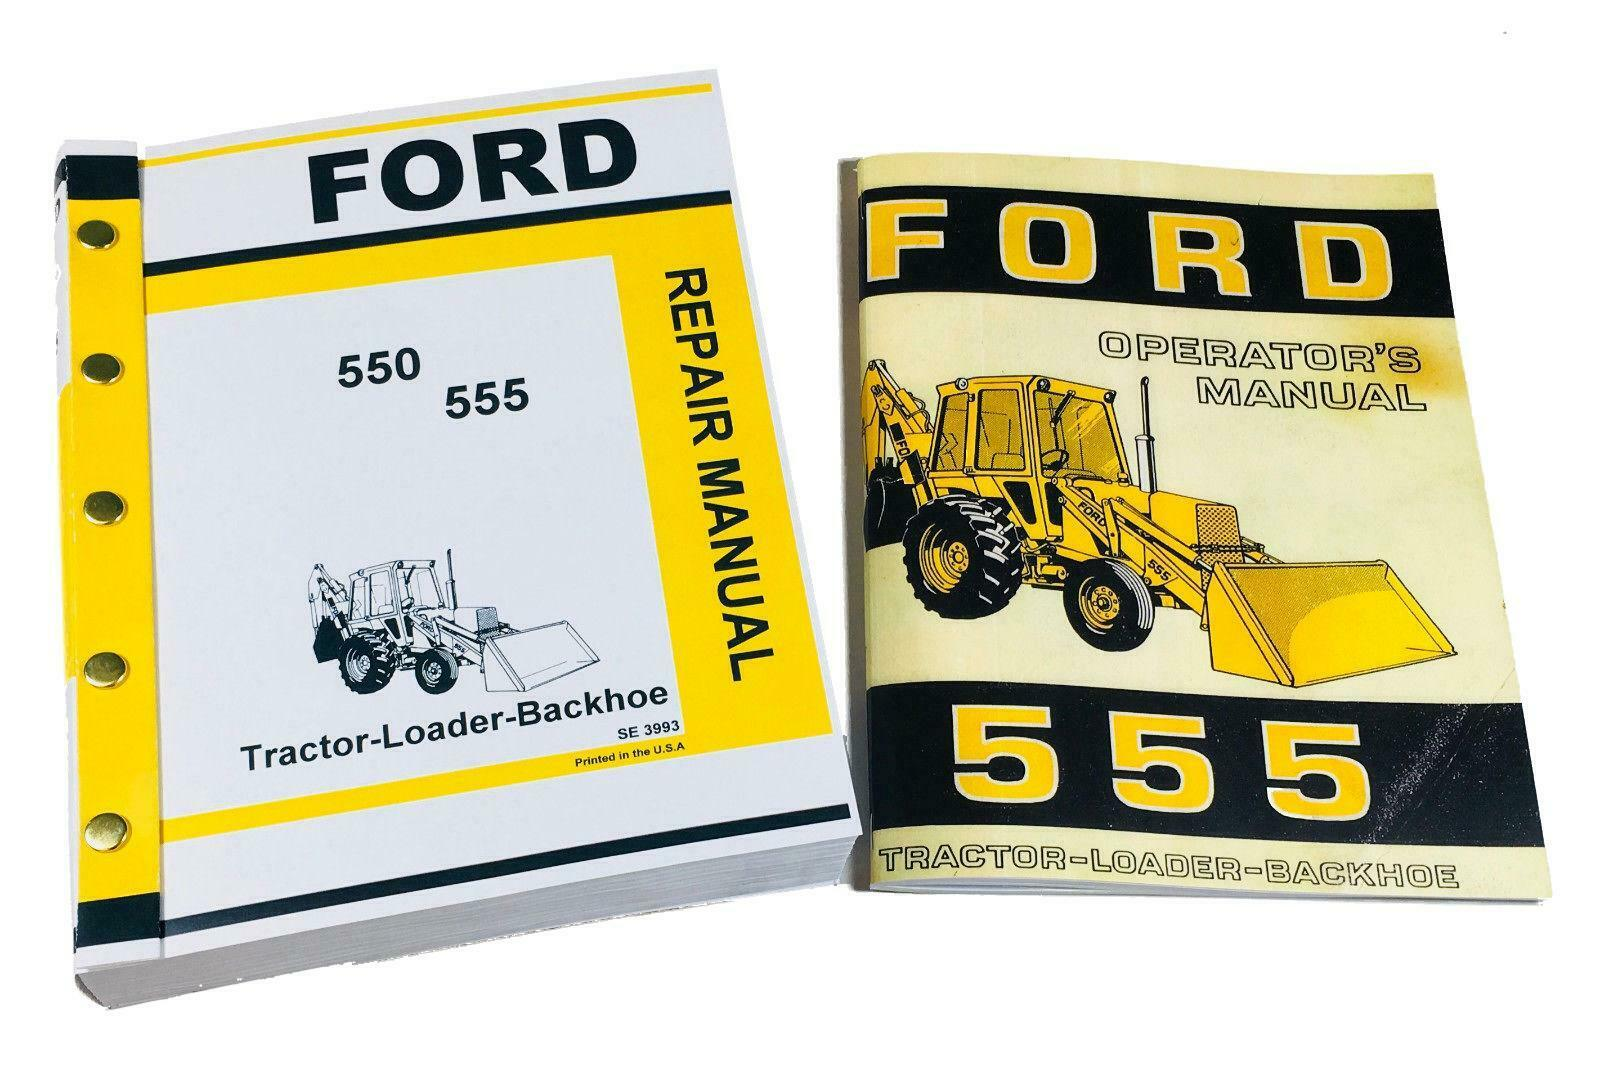 Ford 555 Tractor Loader Backhoe Owners Operators Service Repair Shop Manual  1 of 7FREE Shipping ...